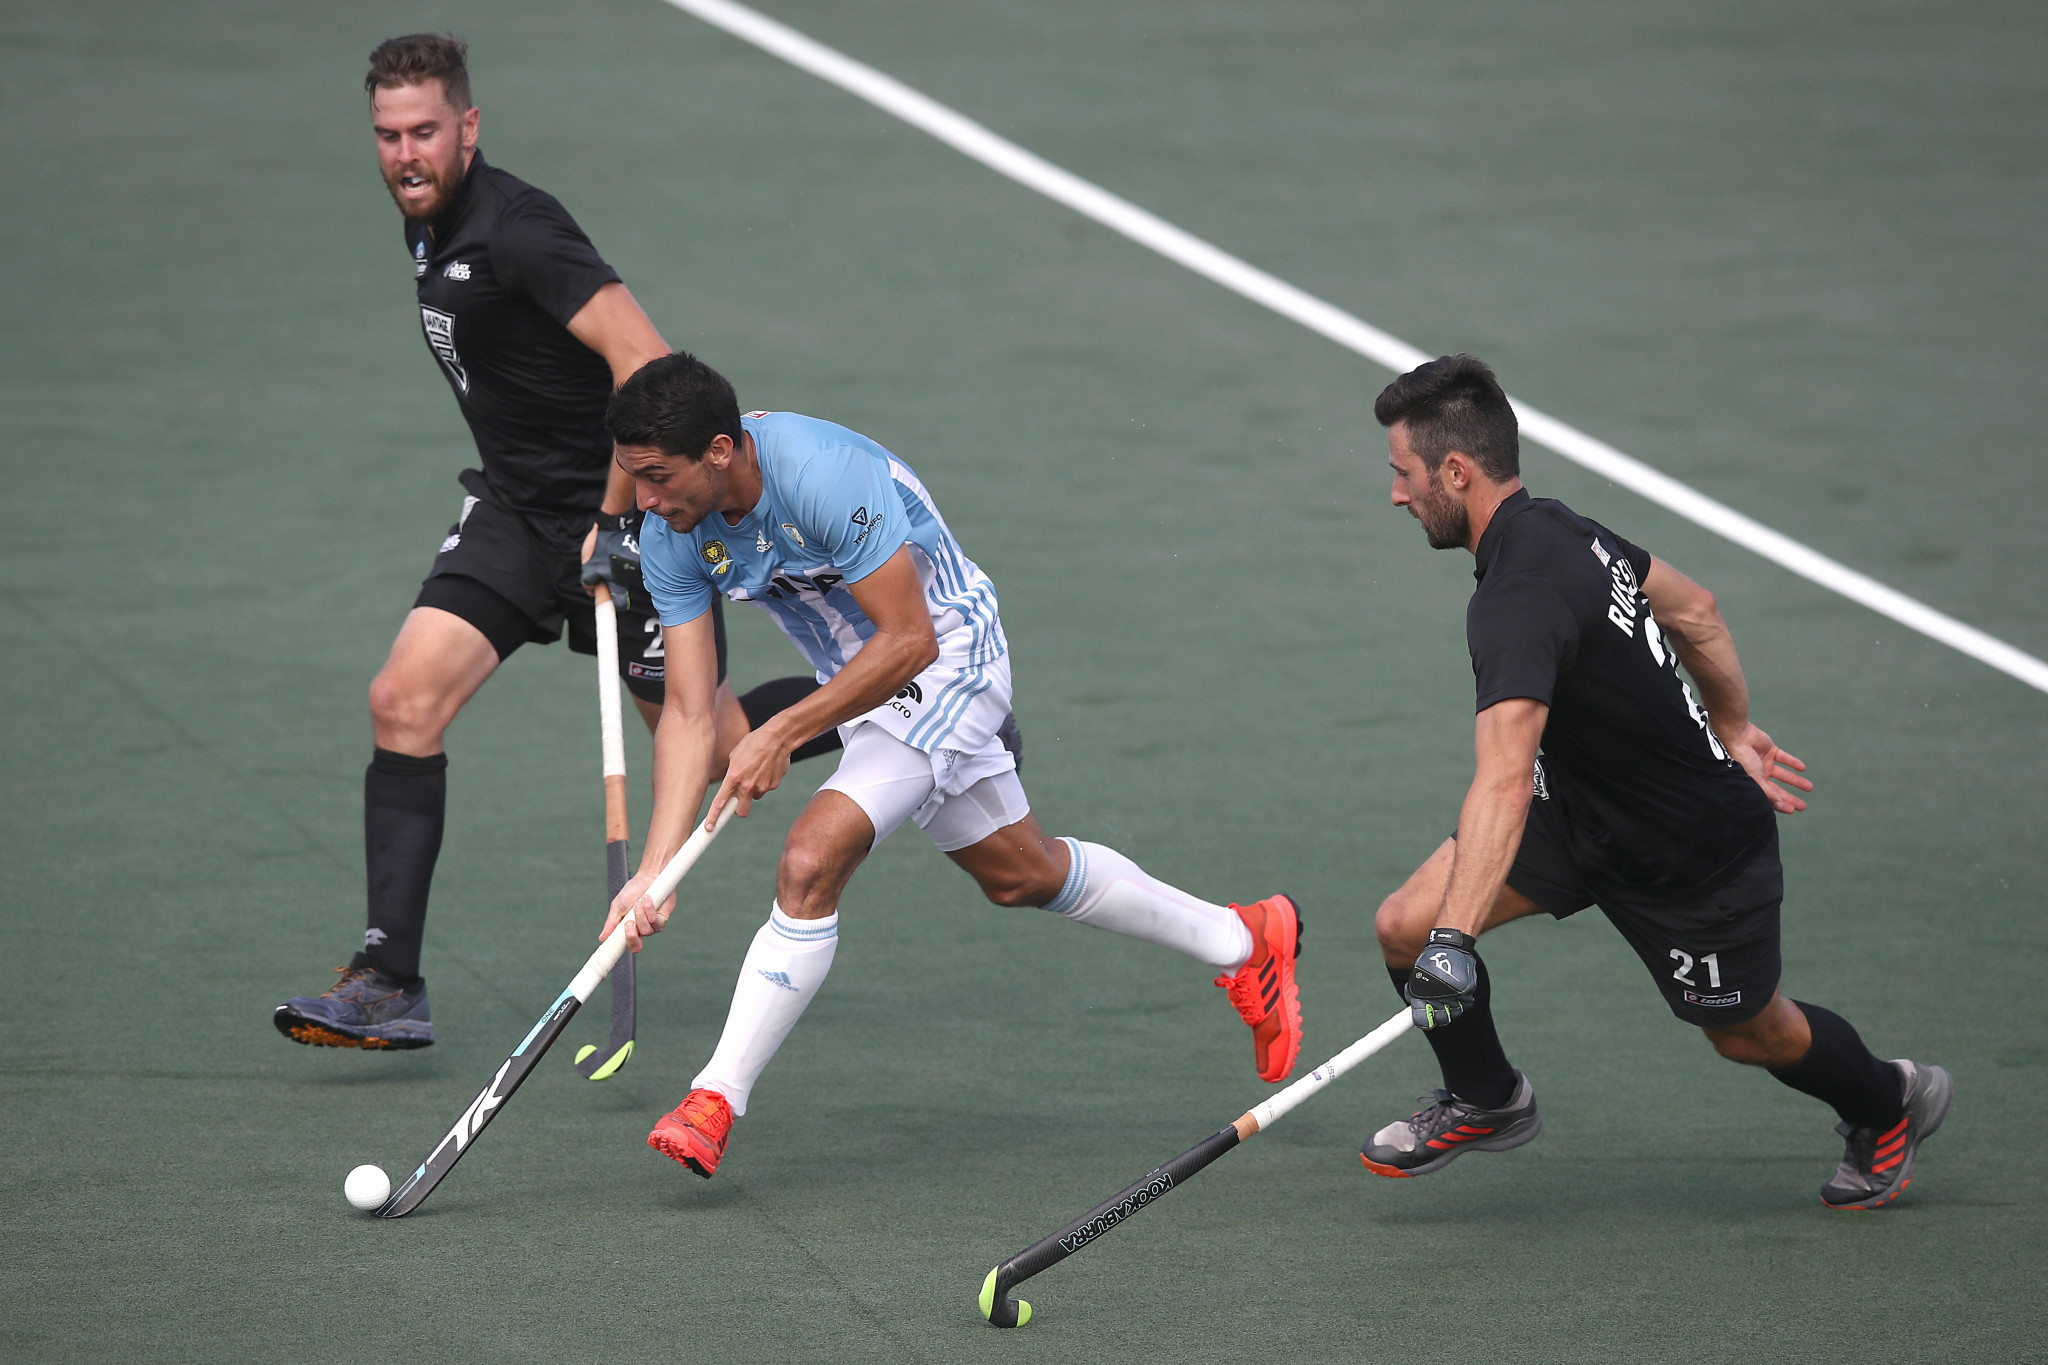 Argentina also proved too strong for the home side in the men's encounter ©Getty Images